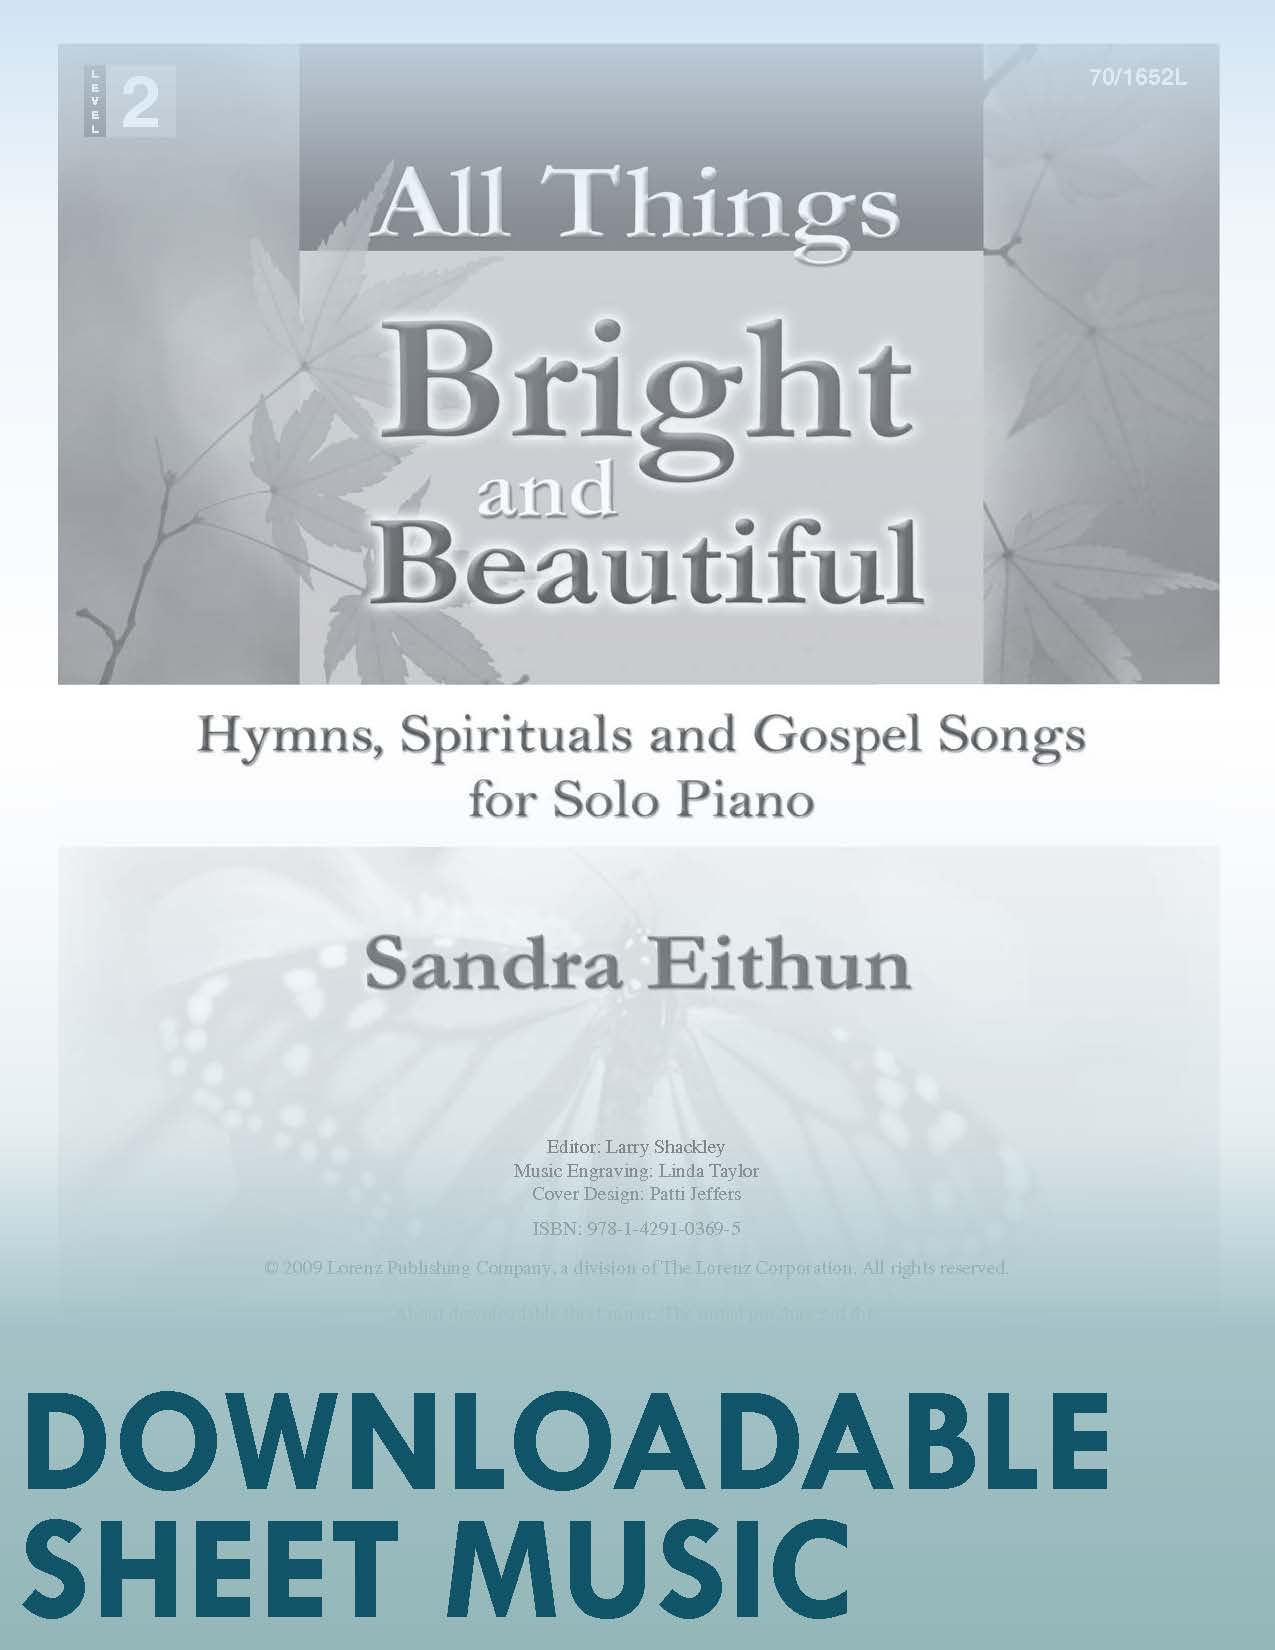 All Things Bright and Beautiful - Digital Download